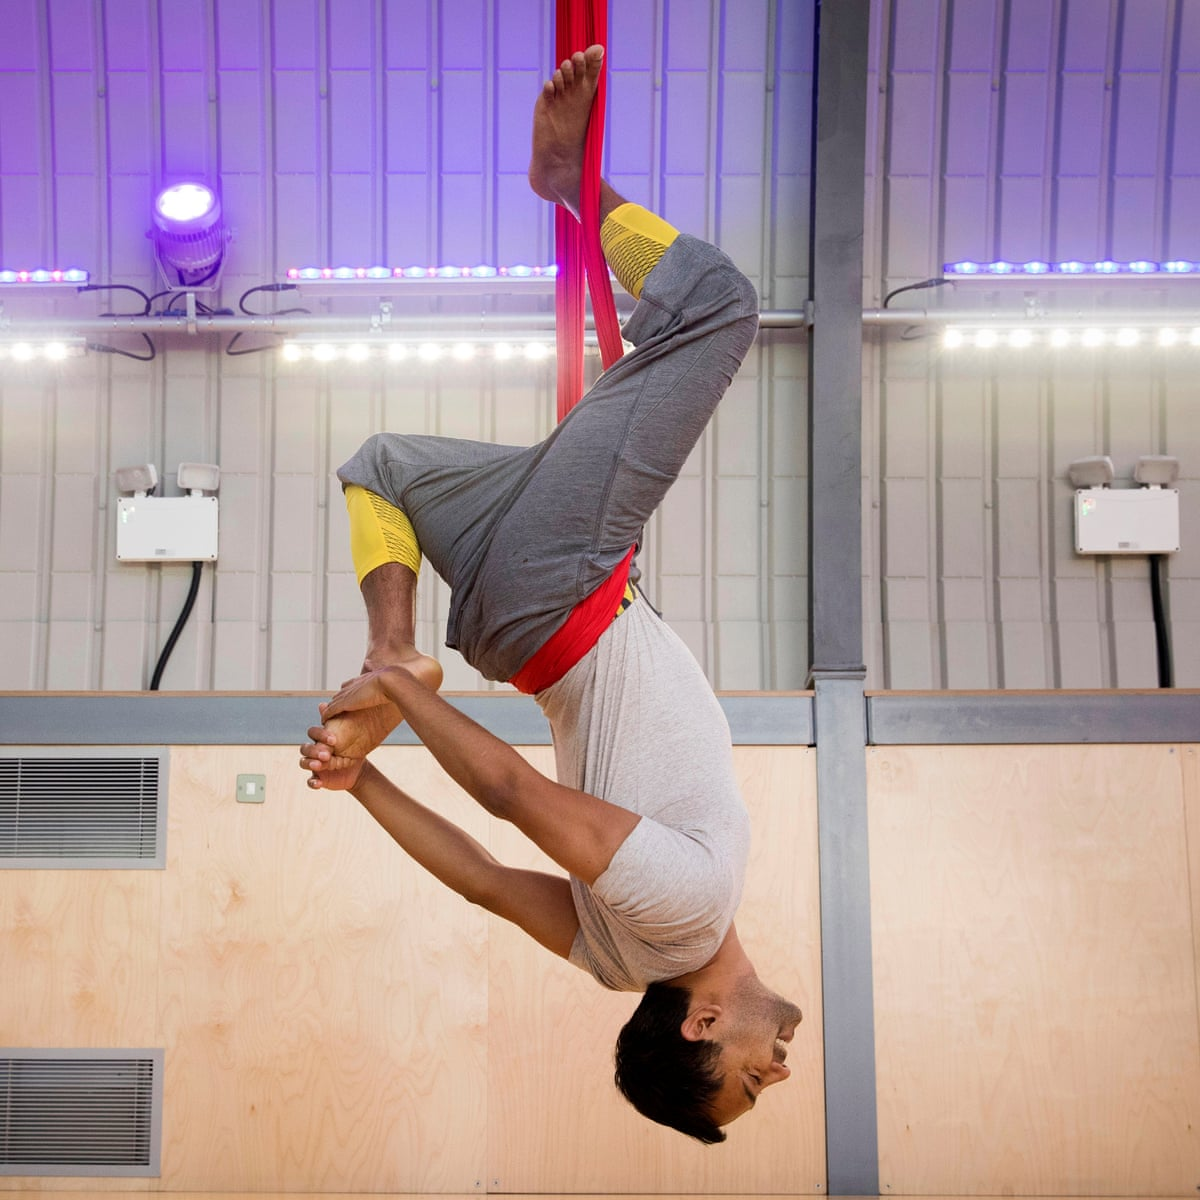 Aerial Yoga I Look Like A Buffoon I Feel Incredible And Then I Vomit Yoga The Guardian